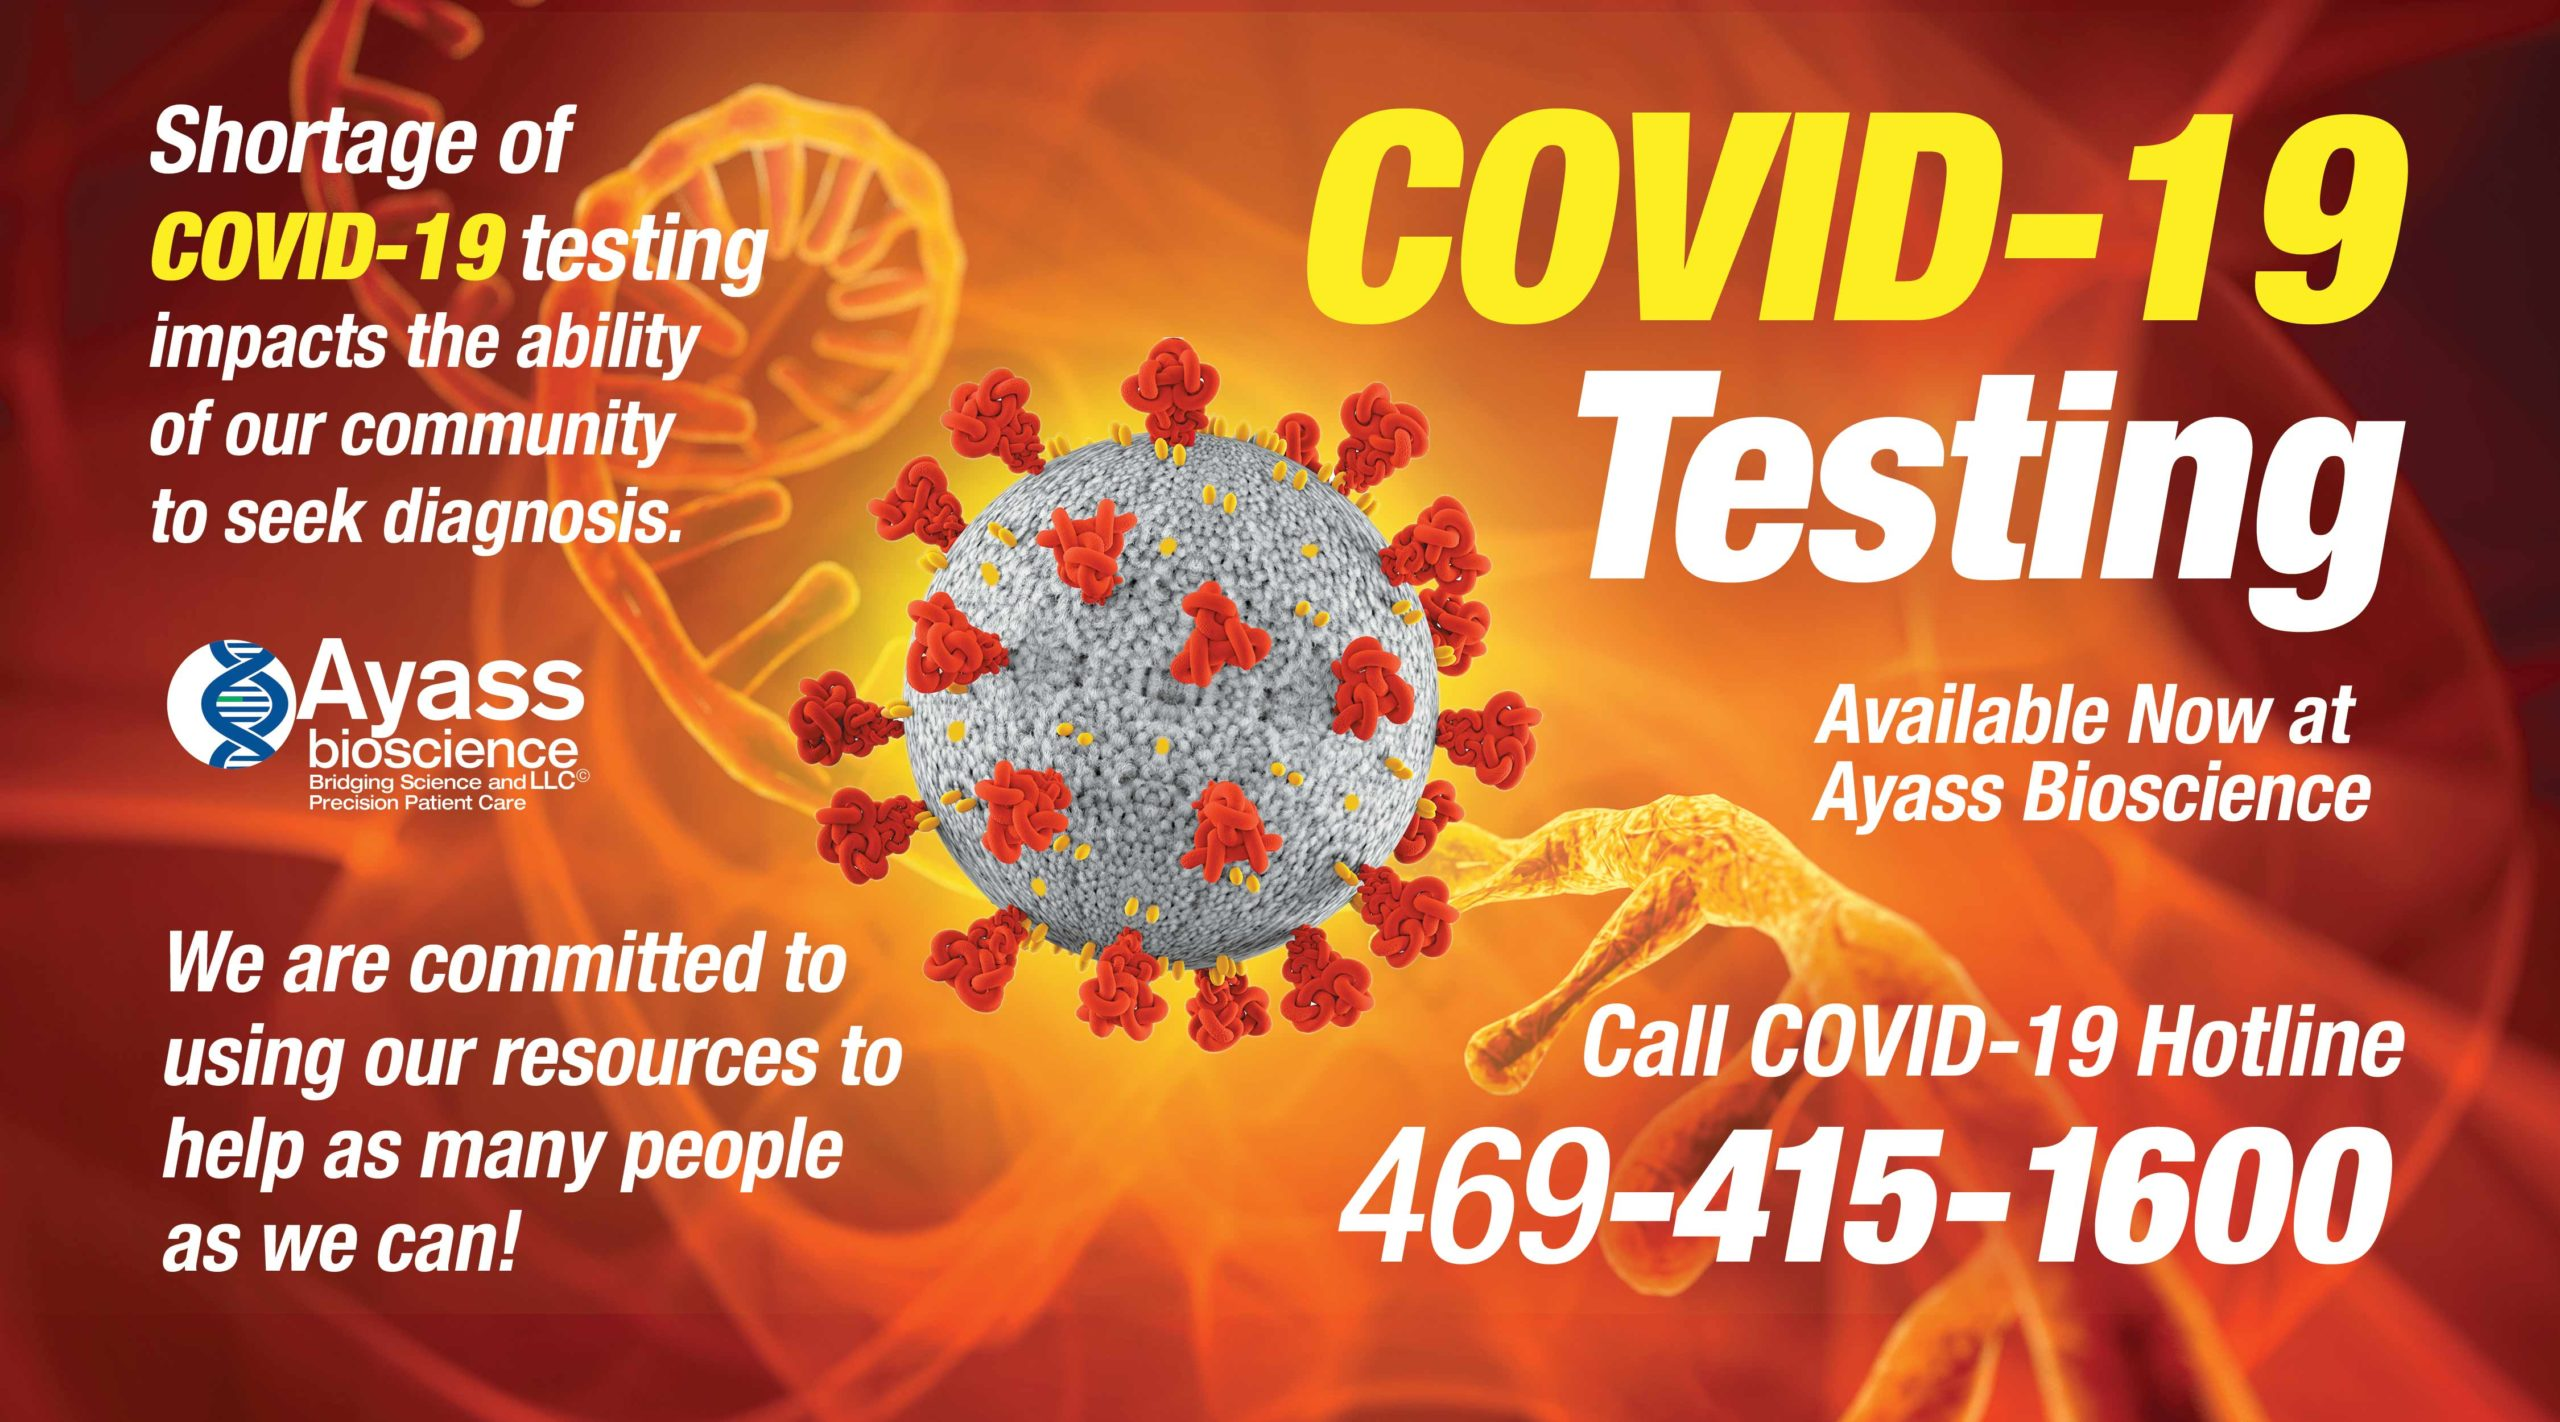 COVID-19 Testing Available Now in Ayass BioScience!